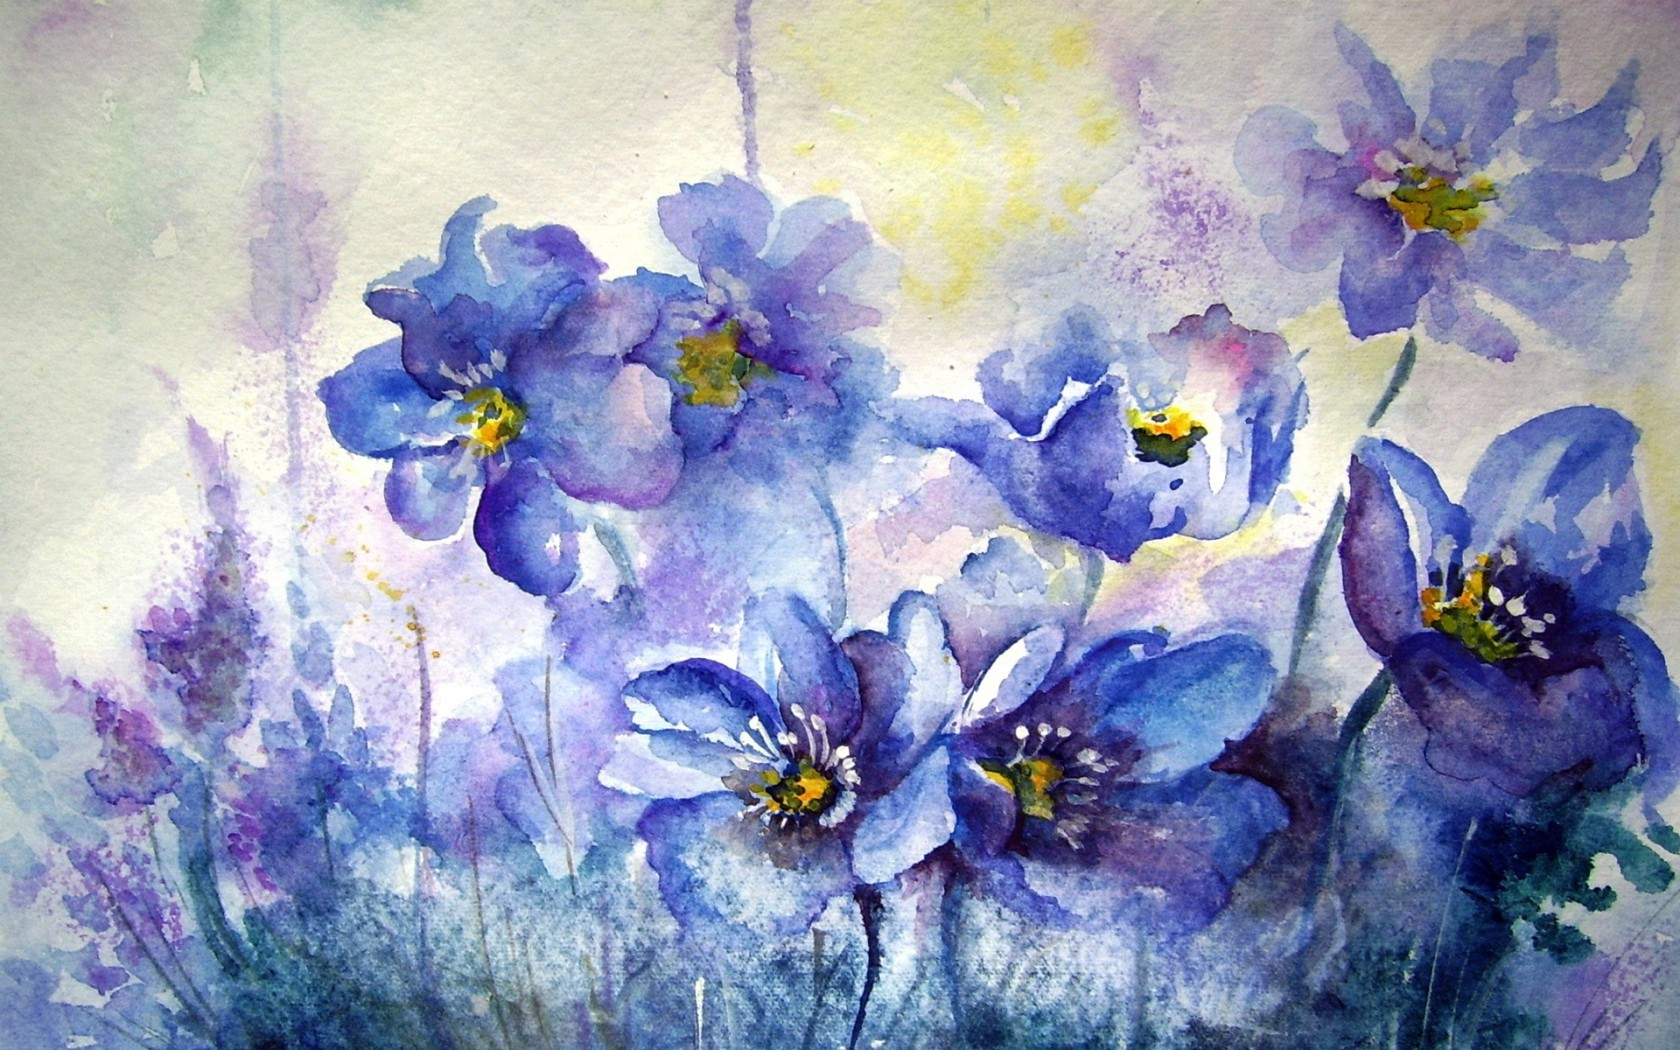 Watercolor flowers wallpaper wallpapersafari flower painting watercolor wallpaper 1680x1050 70424 wallpaperup 1680x1050 izmirmasajfo Image collections